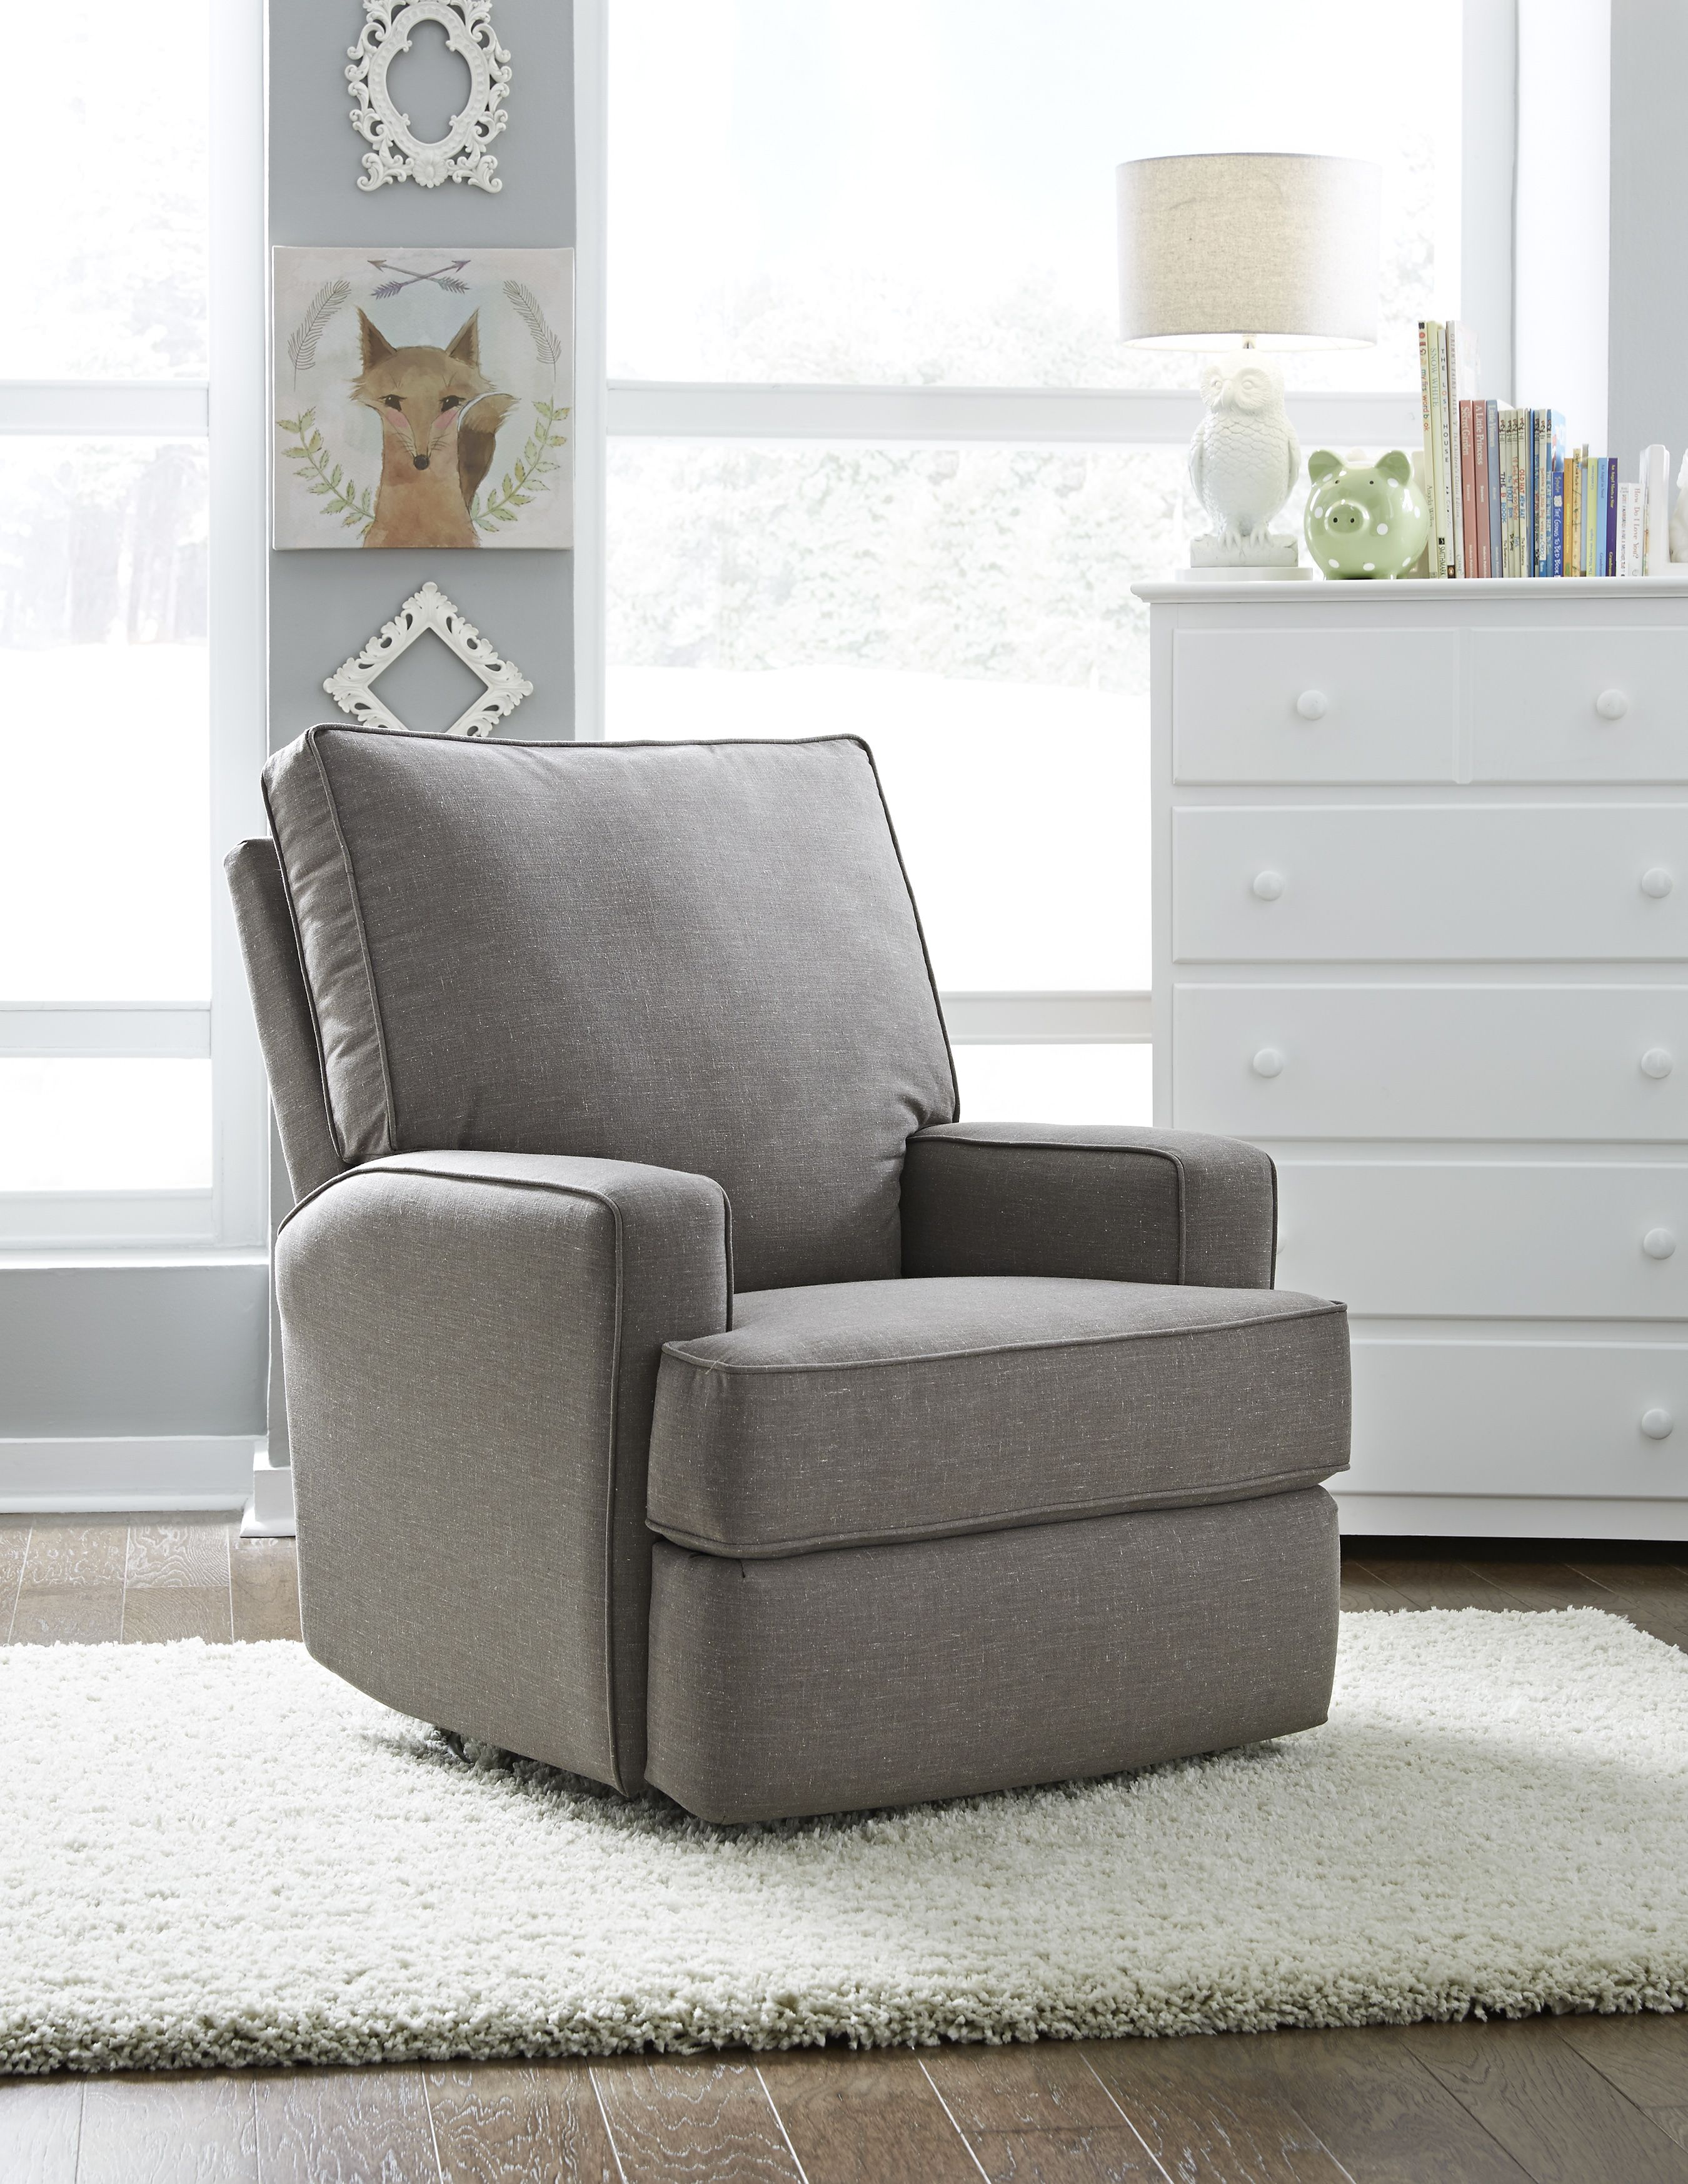 Kersey Swivel Glider Recliner By Best Chairs Storytime Series